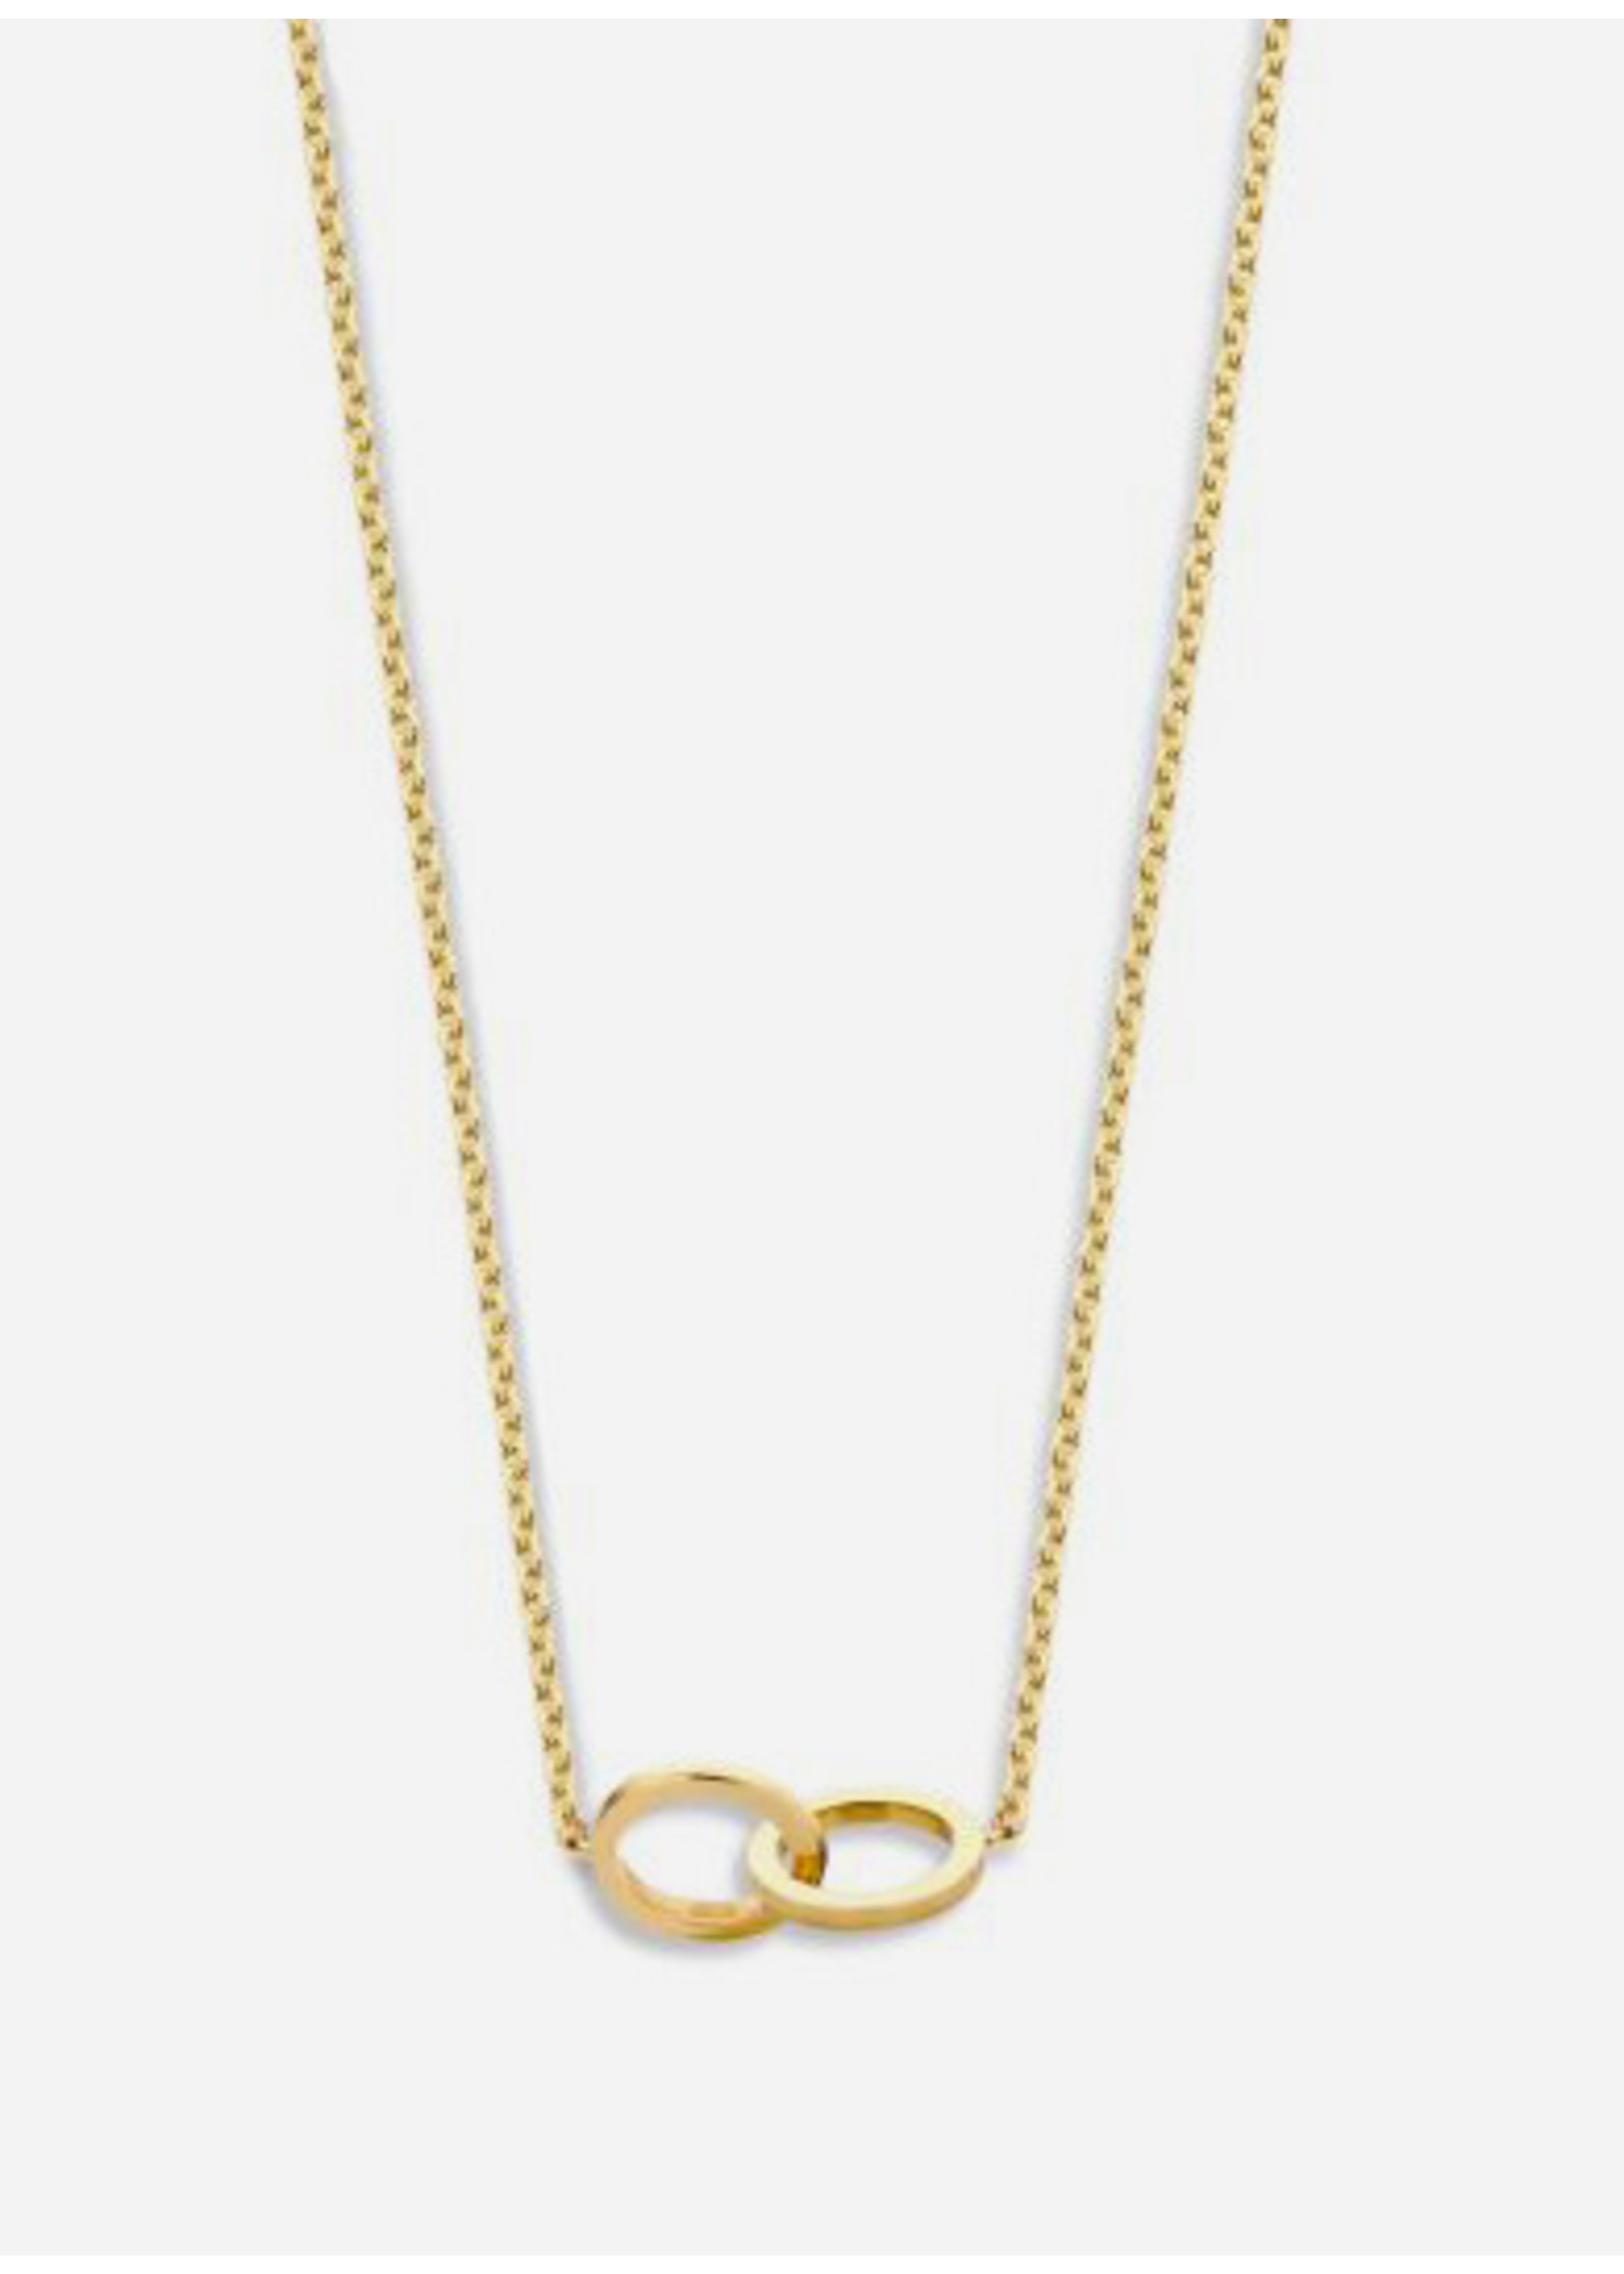 Just Franky Iconic double open circle necklace